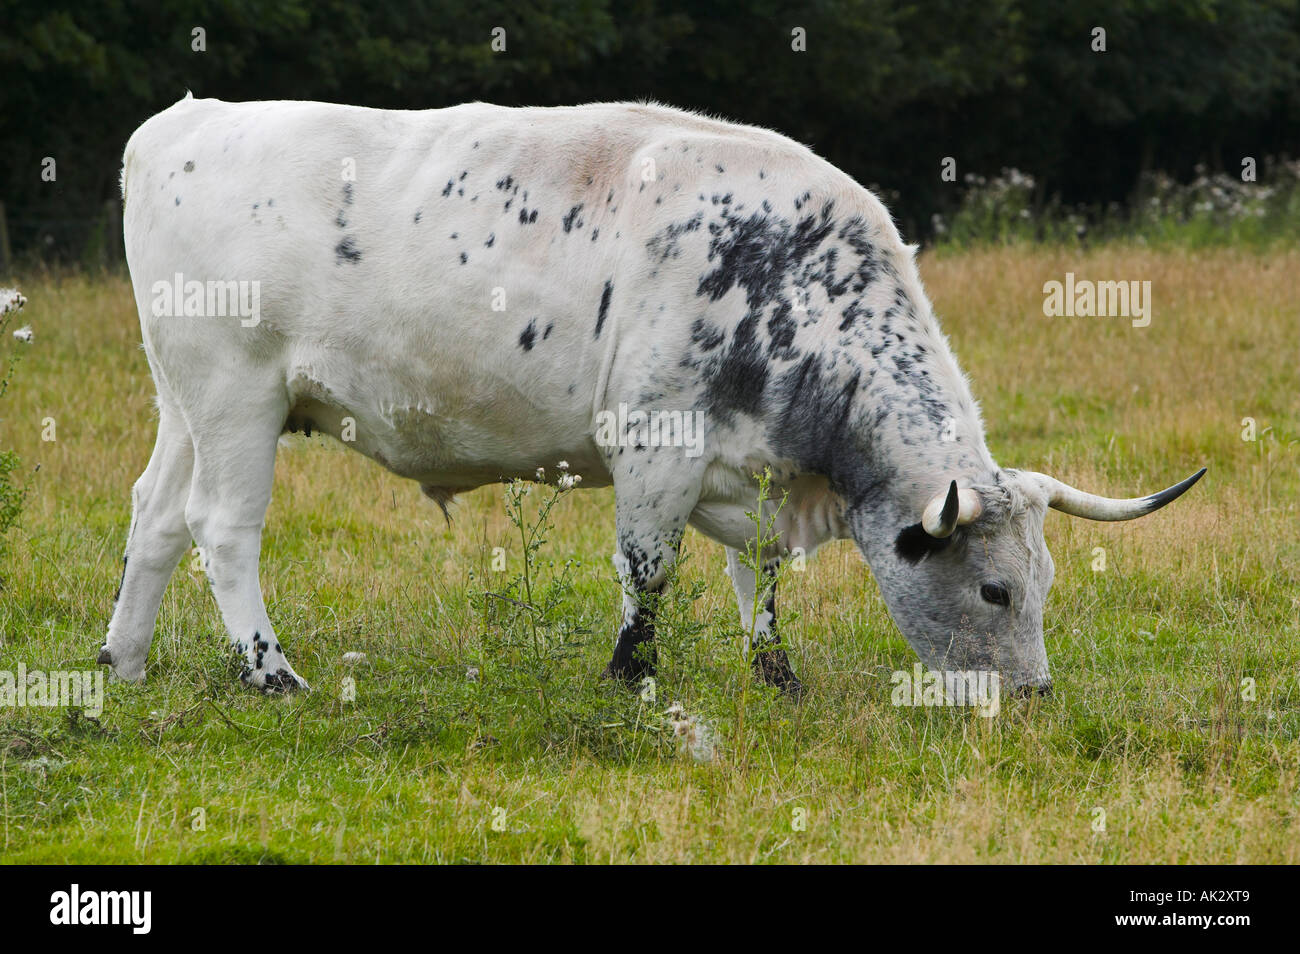 White Park Cattle at Chatelherault Country Park near Hamilton, South Lanarkshire, Scotland - Stock Image